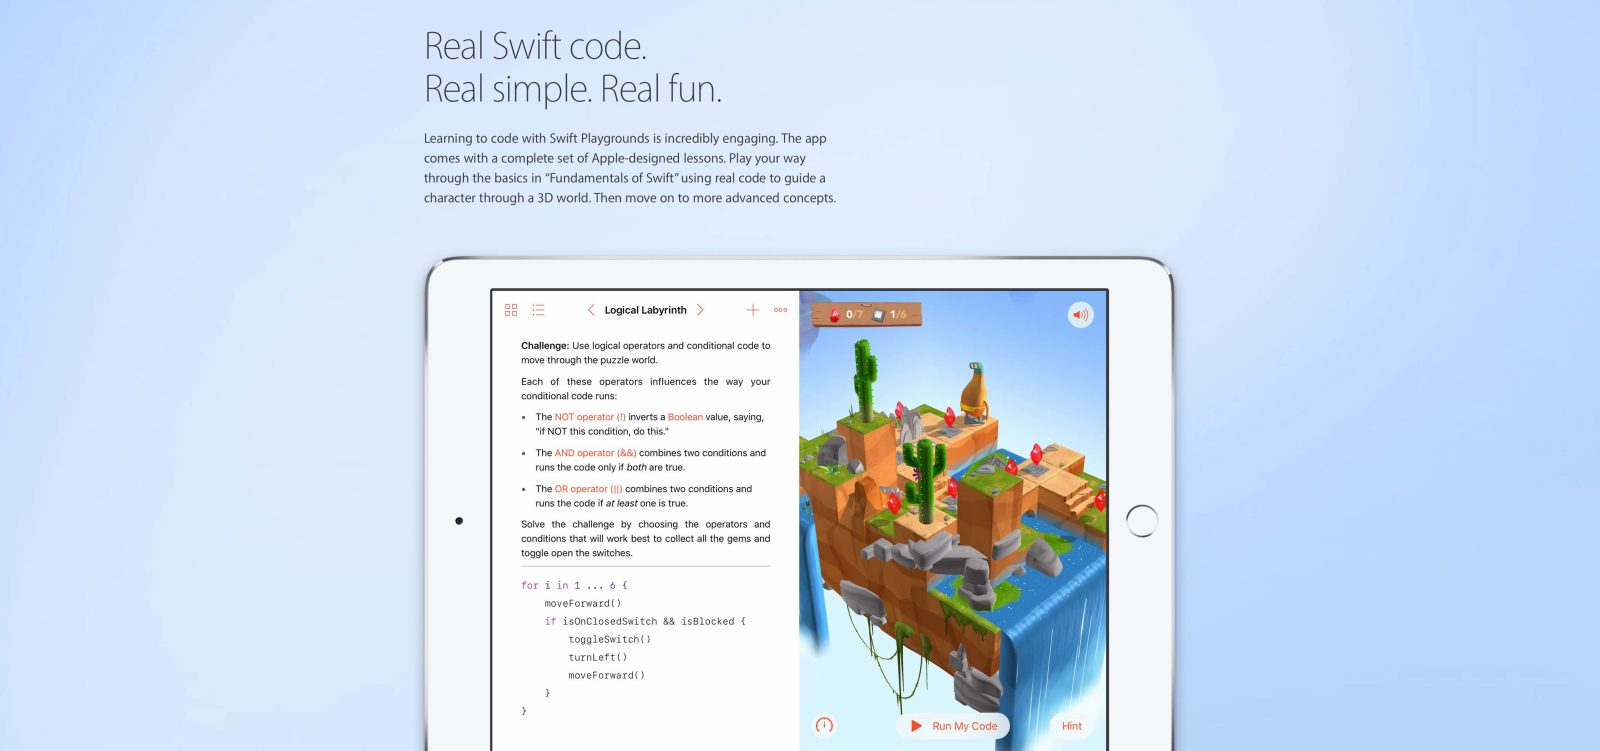 Swift Playgrounds for iPad adds improved third-party content